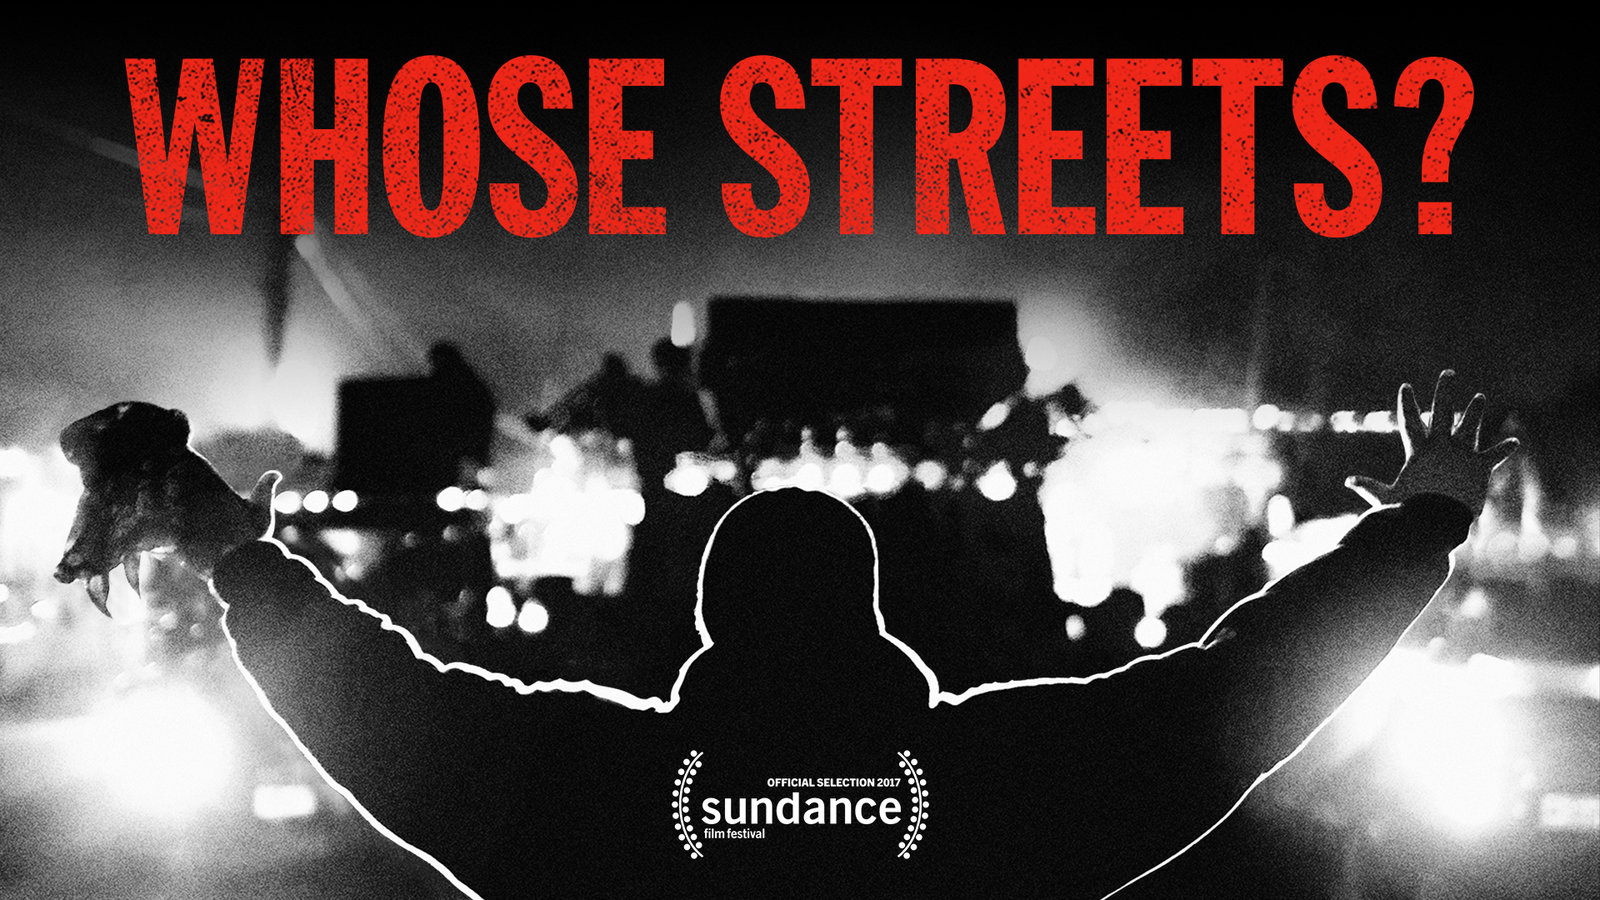 Whose Streets? - An Unflinching Look at the Ferguson Uprising